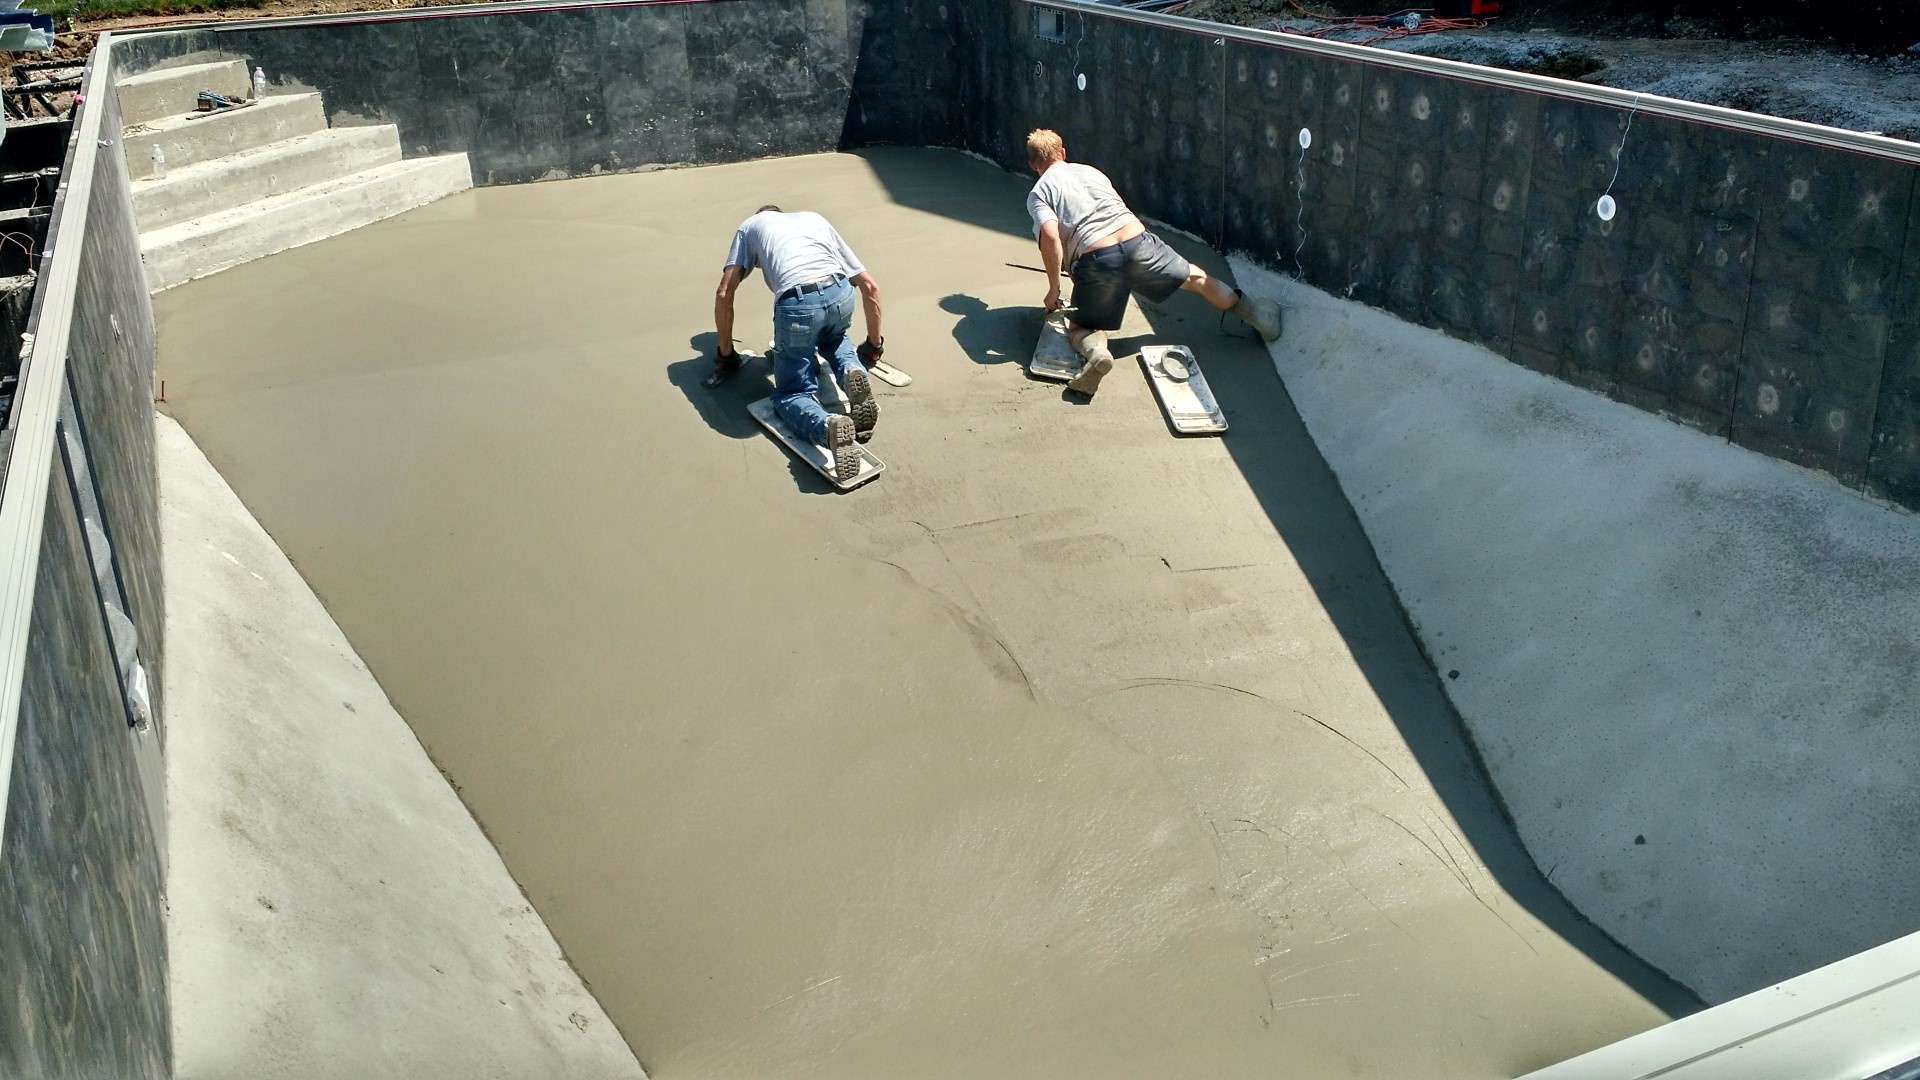 vermiculite vs concrete pool bottom what is better. Black Bedroom Furniture Sets. Home Design Ideas